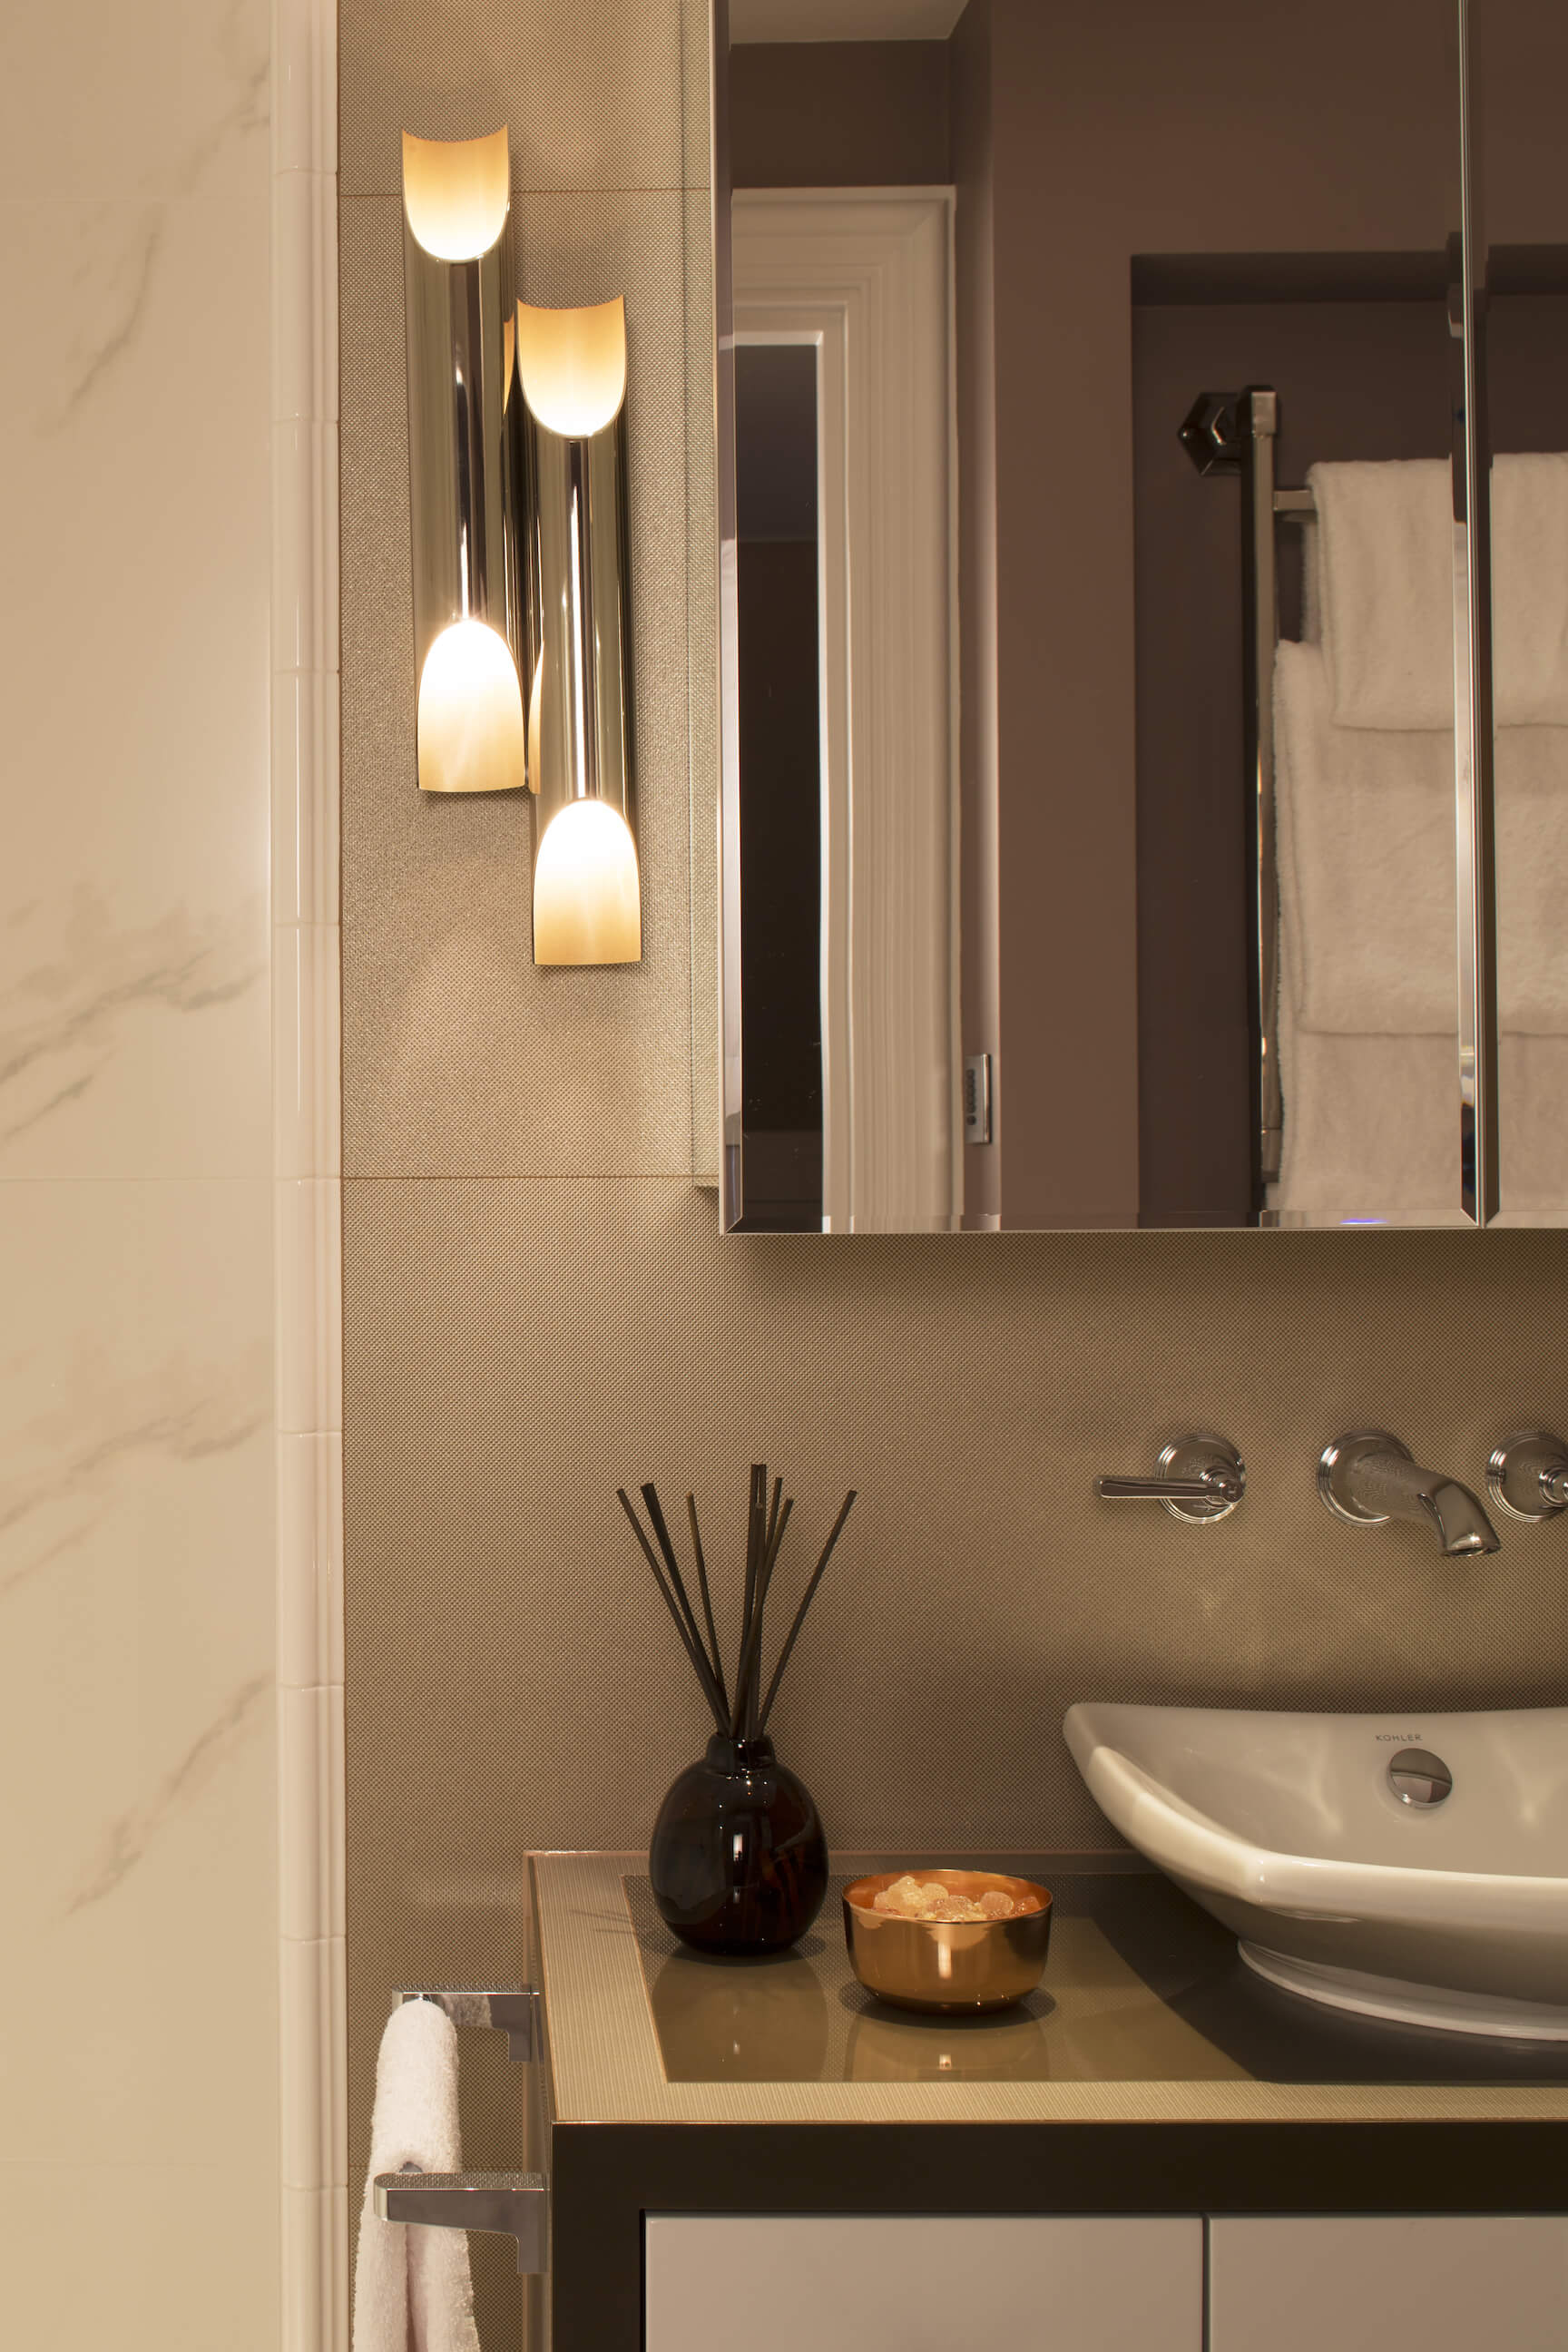 Chromed cylinder sconces flank the mirror in this bathroom, while wall-mounted plumbing floats above the vessel sink.